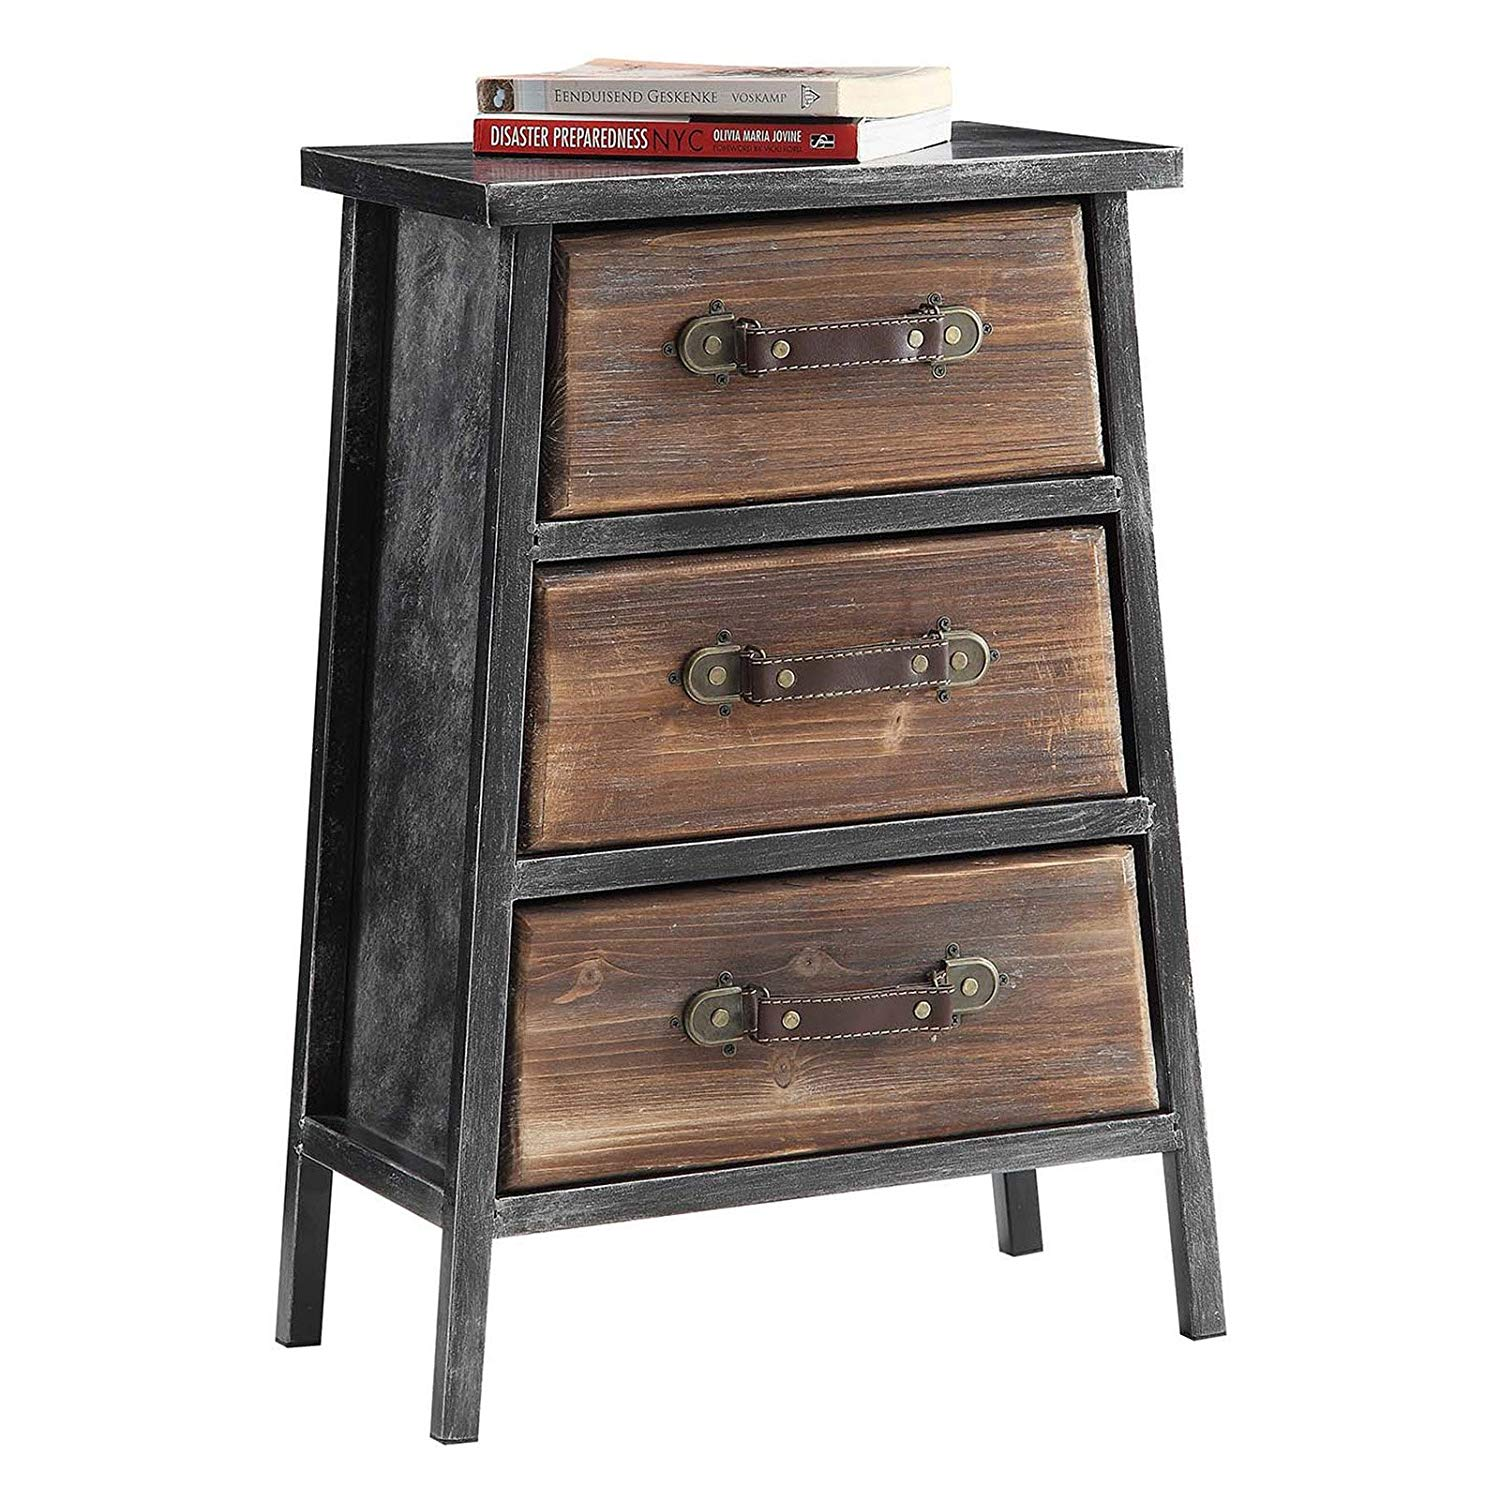 Vintage-Inspired Urban Three Drawer Chest, Fostering a Feeling of Warmth in Any Room in Your Home, Sturdy Black and Gray Wood and Industrial Metal Frame, Rustic Leather Pulls + Expert Guide